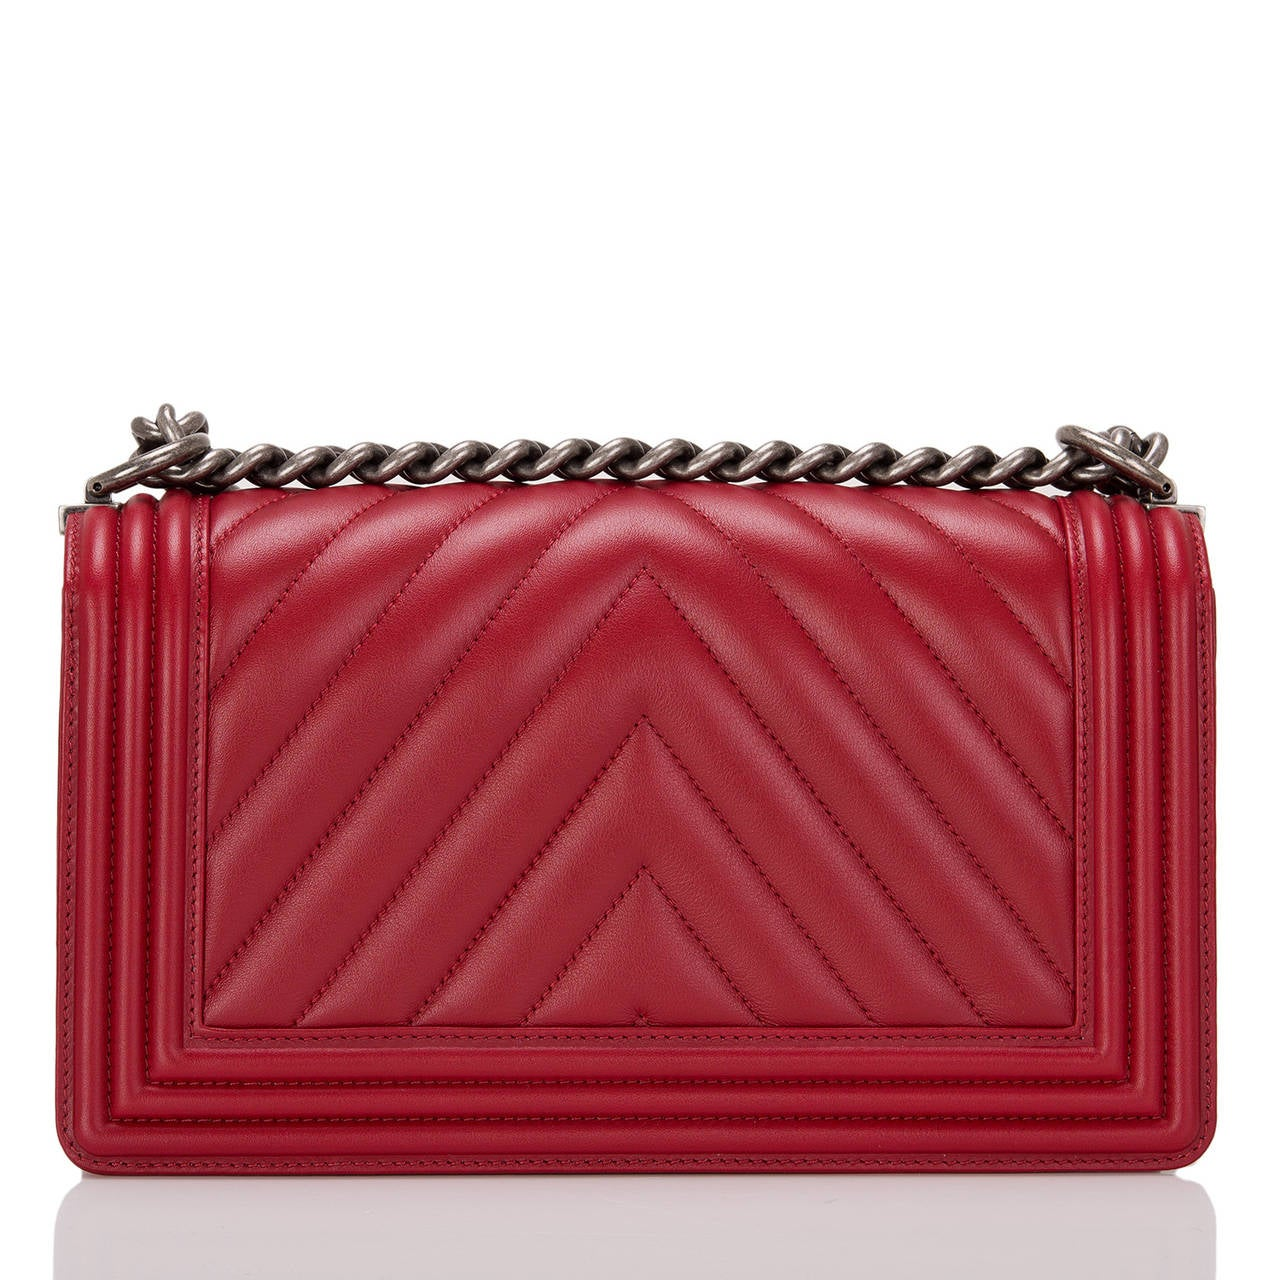 Chanel Red Chevron Medium Boy Bag In New Never_worn Condition For Sale In New York, NY